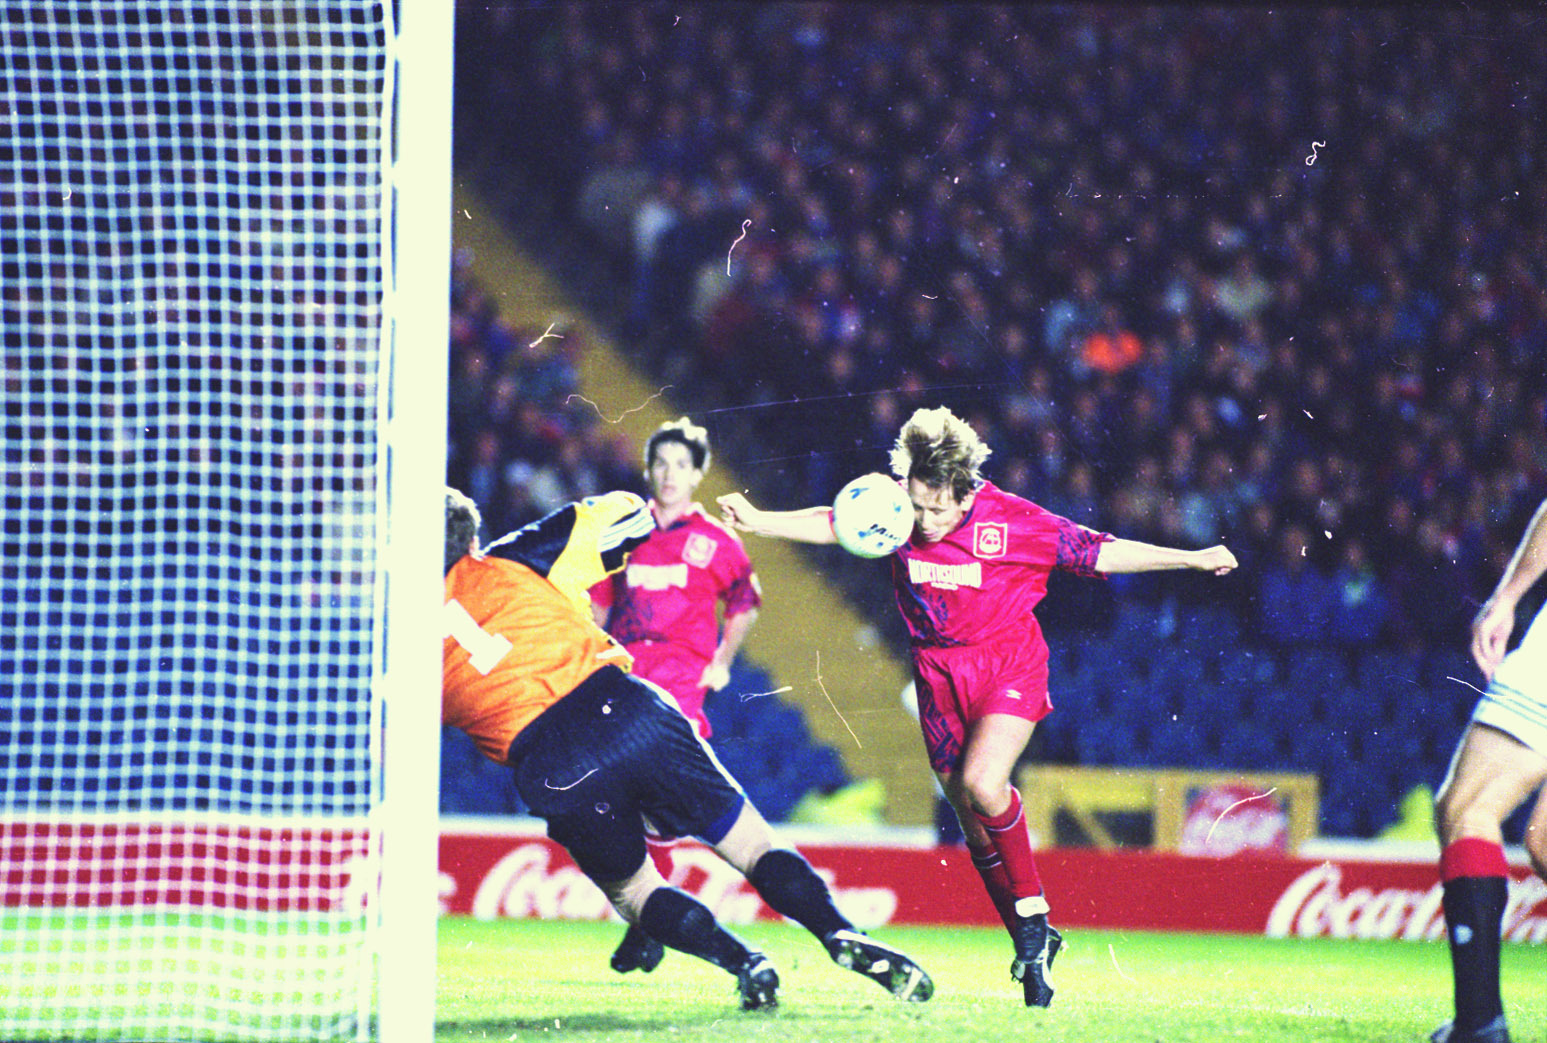 Billy Dodds scores for the Dons against Rangers.